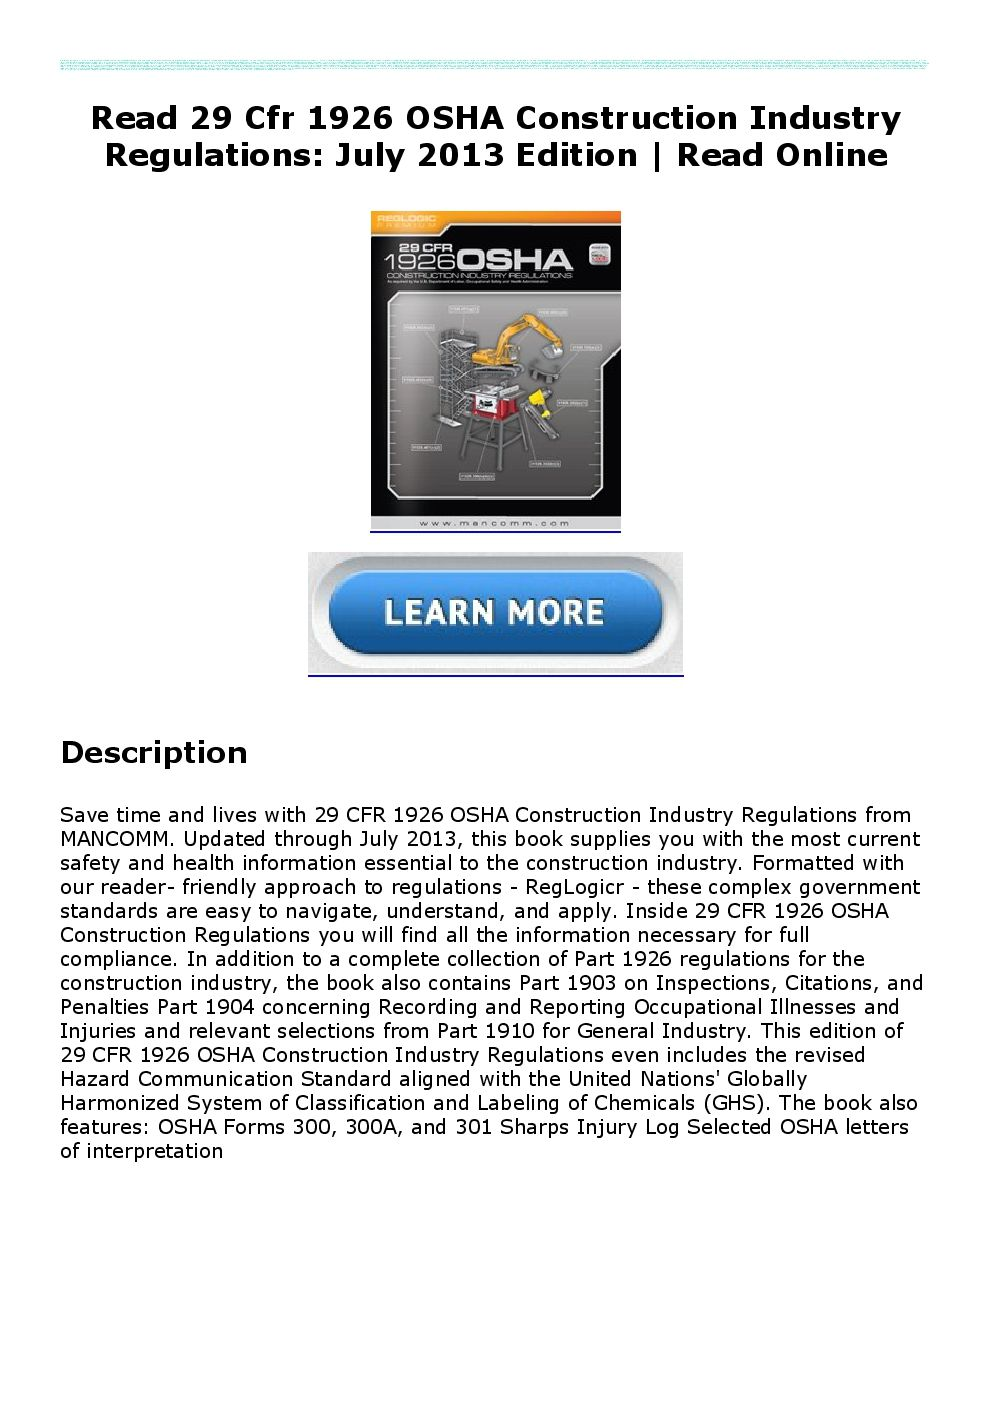 Read 29 Cfr 1926 OSHA Construction Industry Regulations